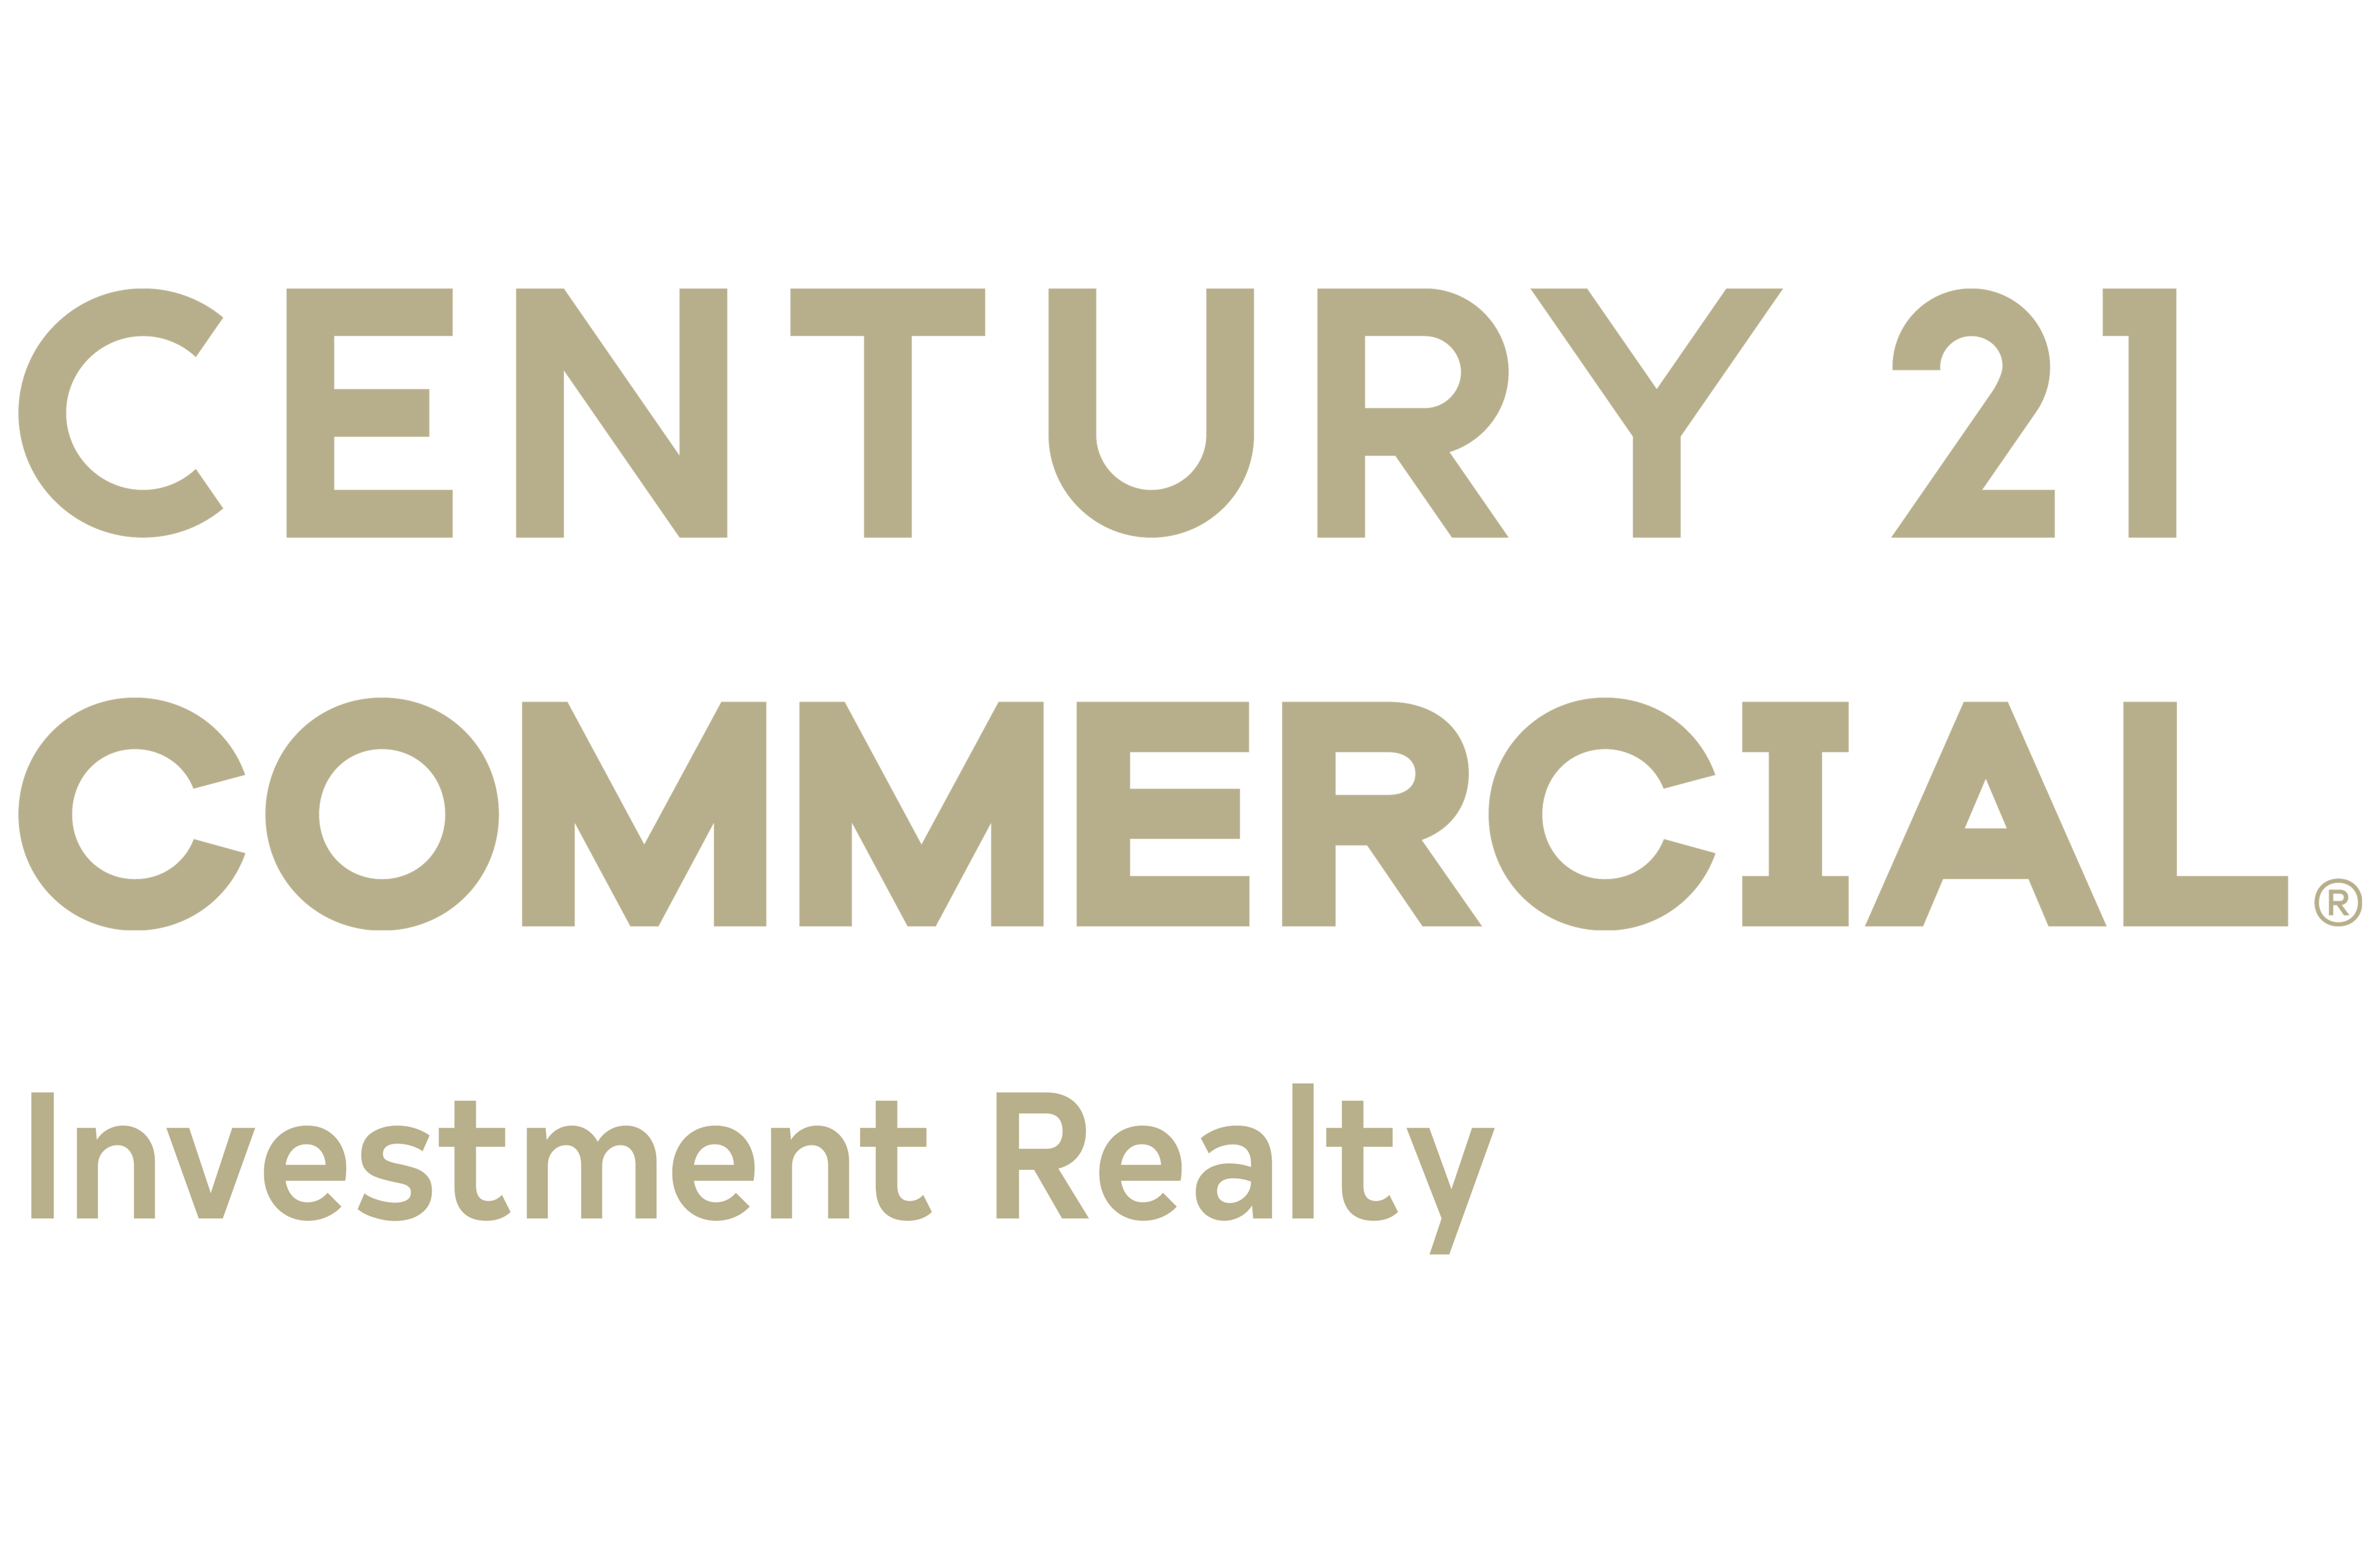 CENTURY 21 Investment Realty